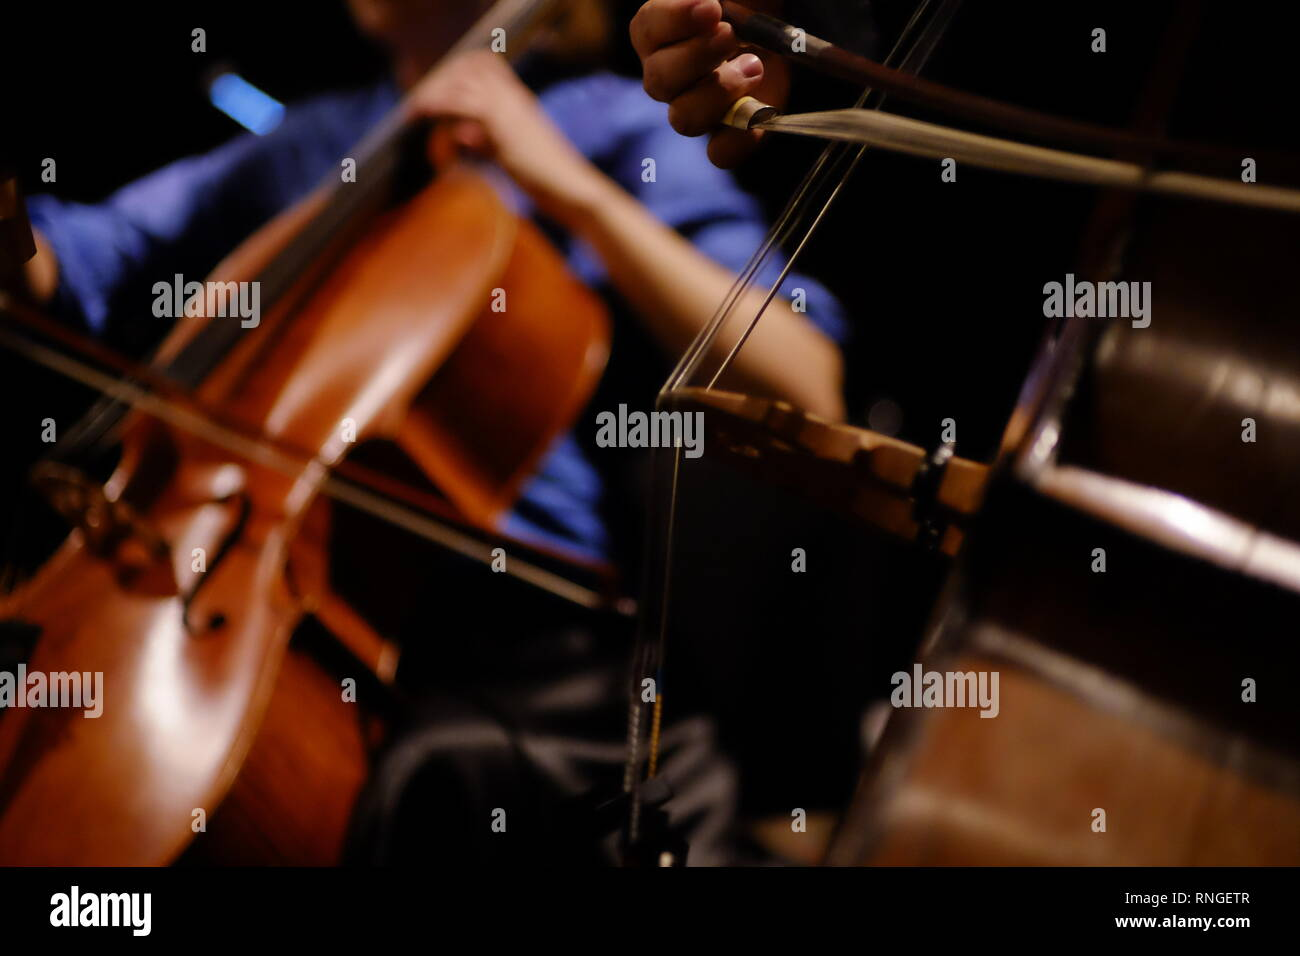 Double bass & cello being bowed in closeup in concert without faces being shown - Stock Image